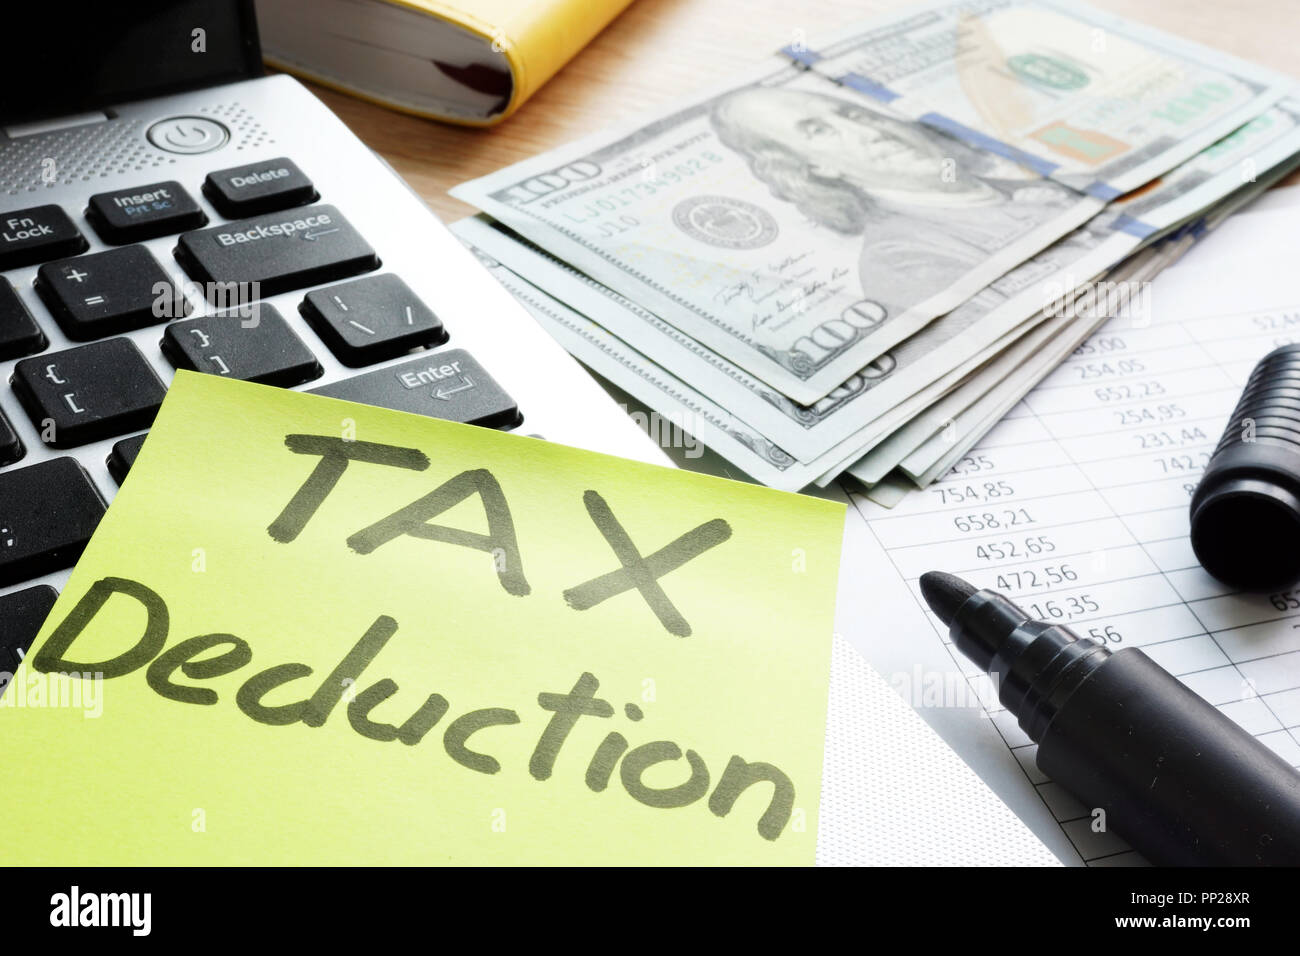 Tax deduction written on a memo stick. - Stock Image